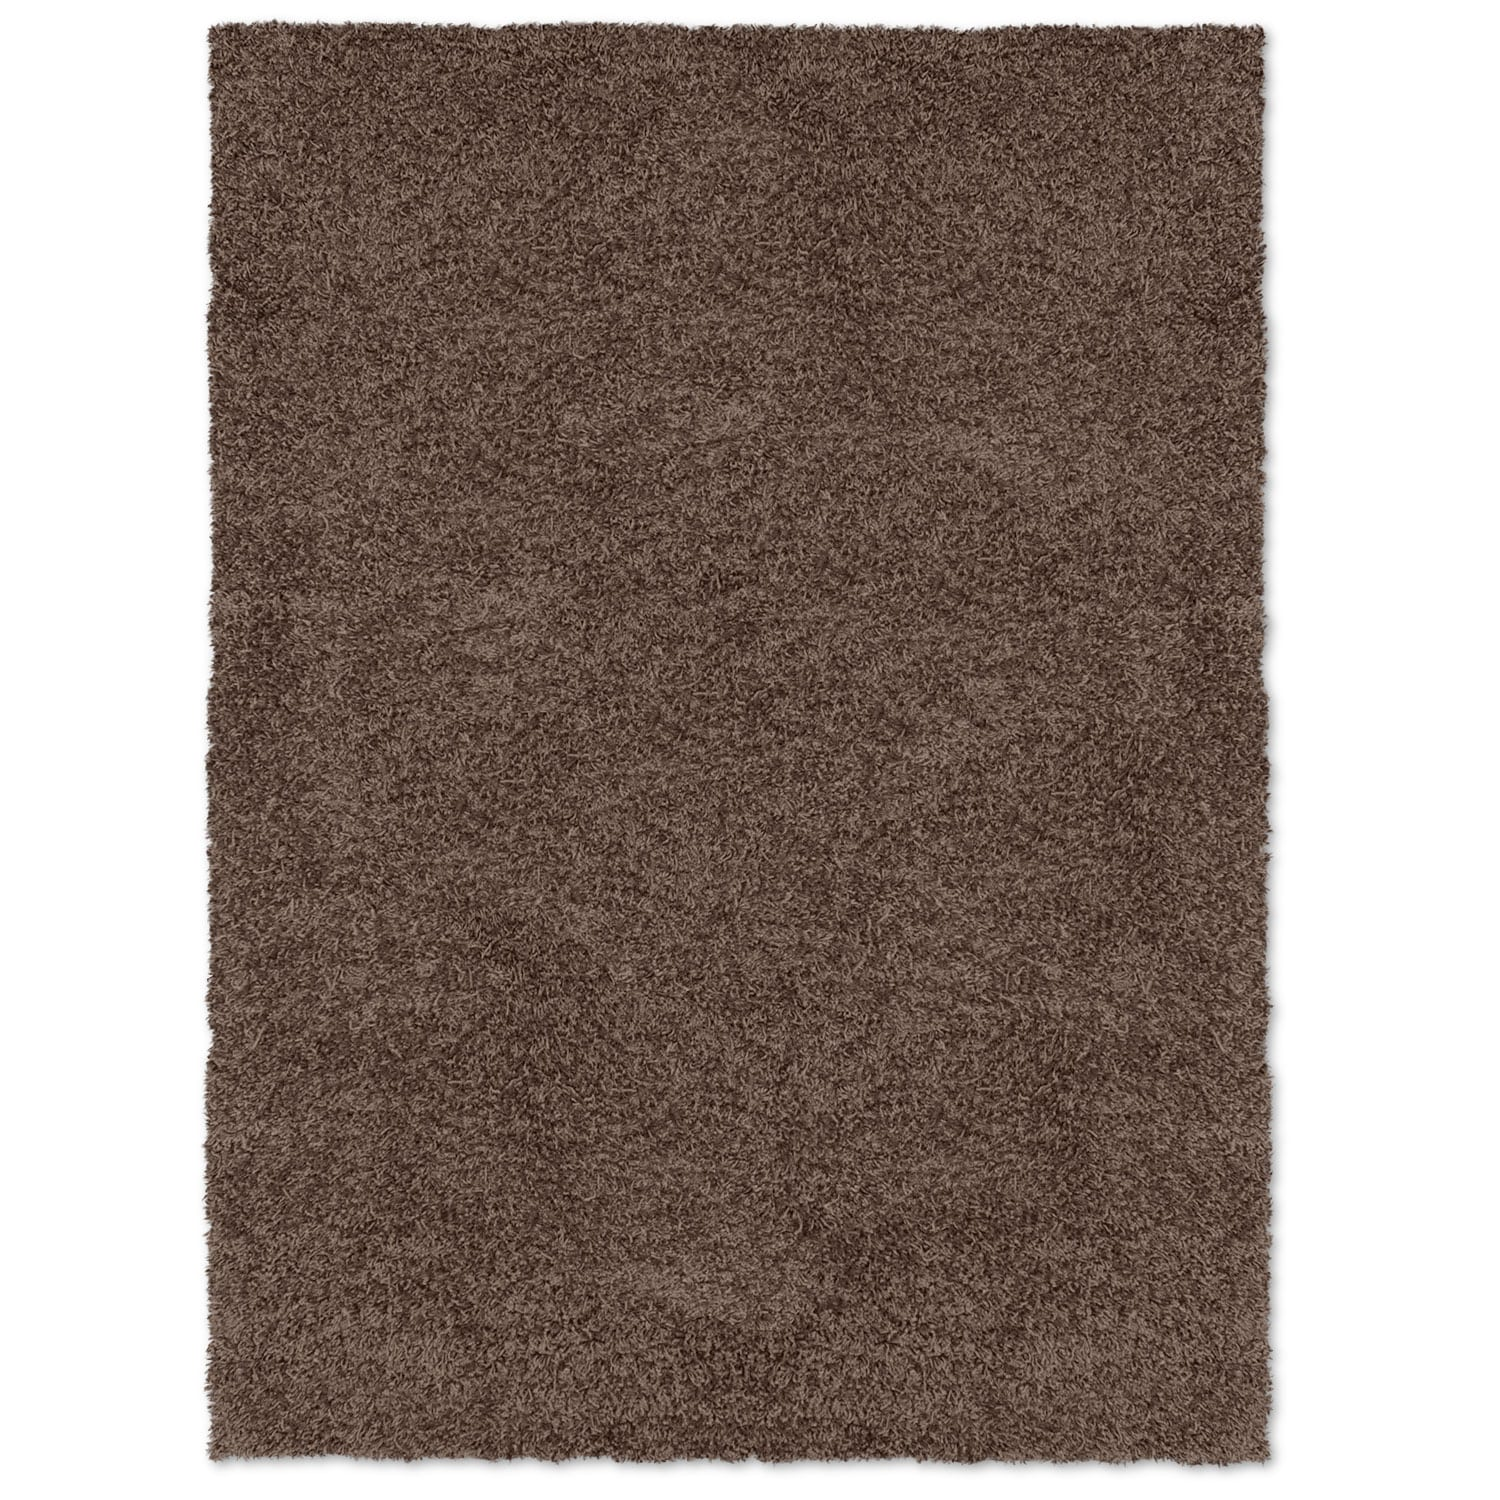 Comfort Chocolate Shag Area Rug (5' x 8')